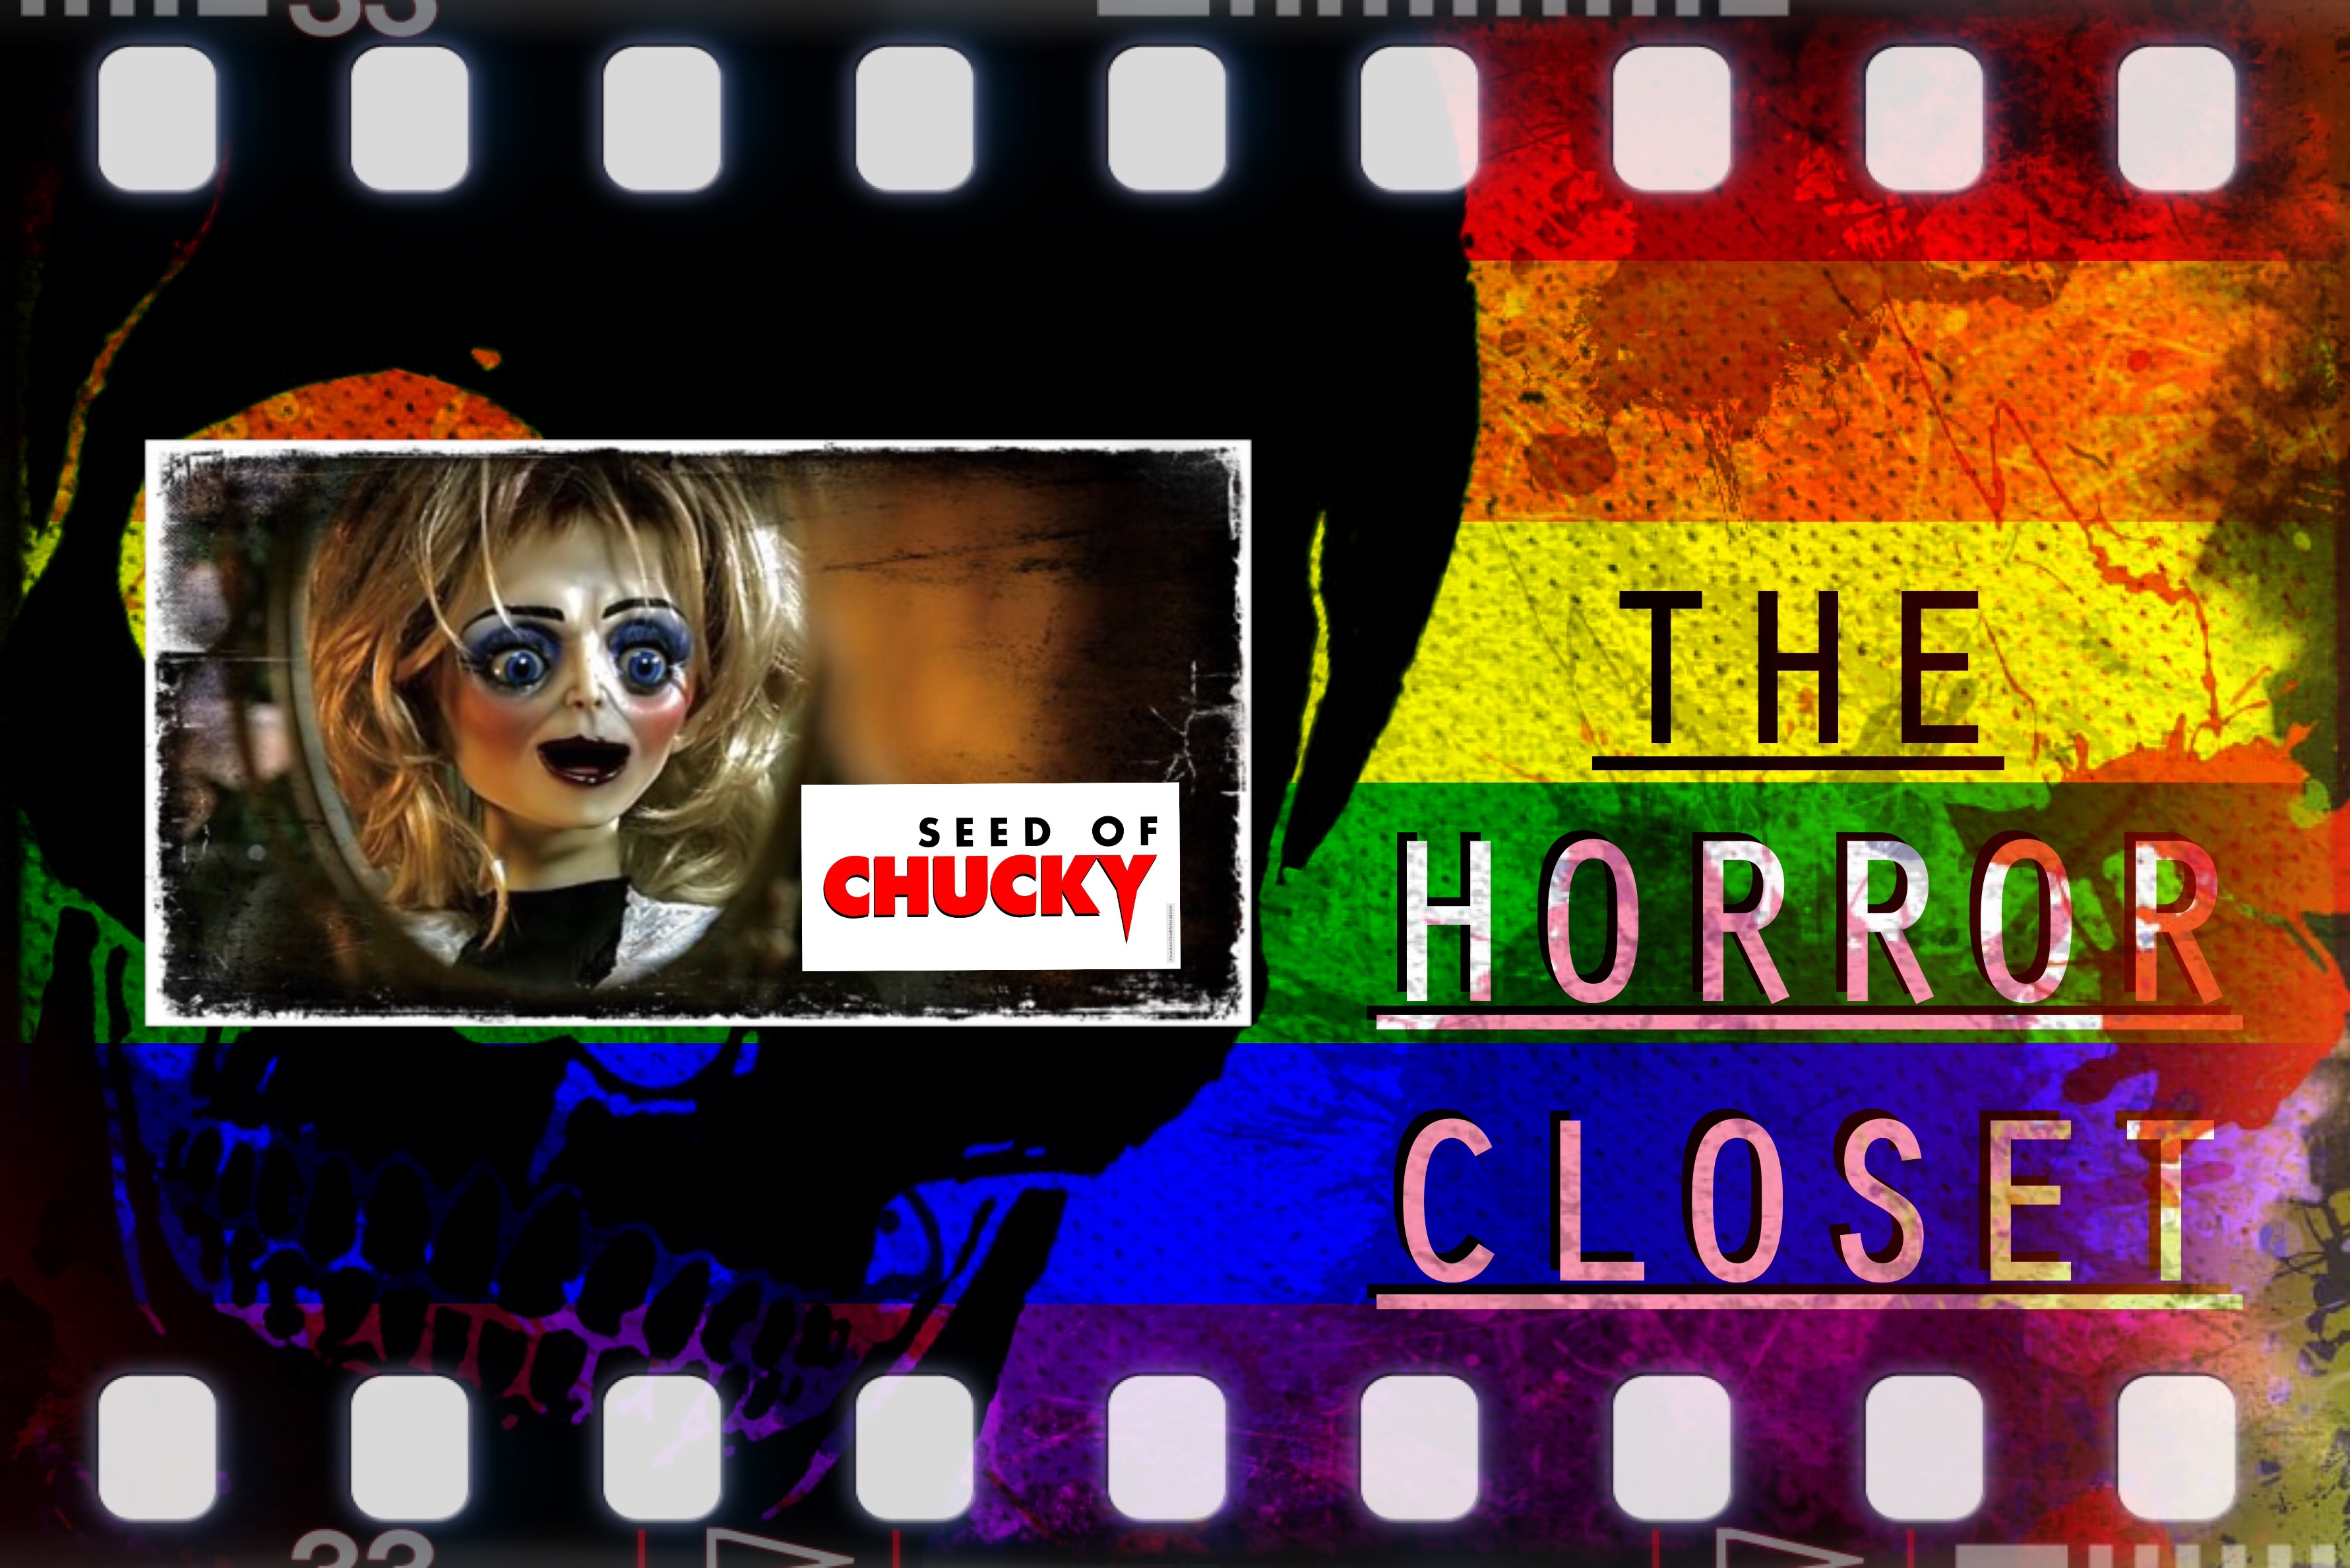 The Horror Closet - Seed of Chucky Banner